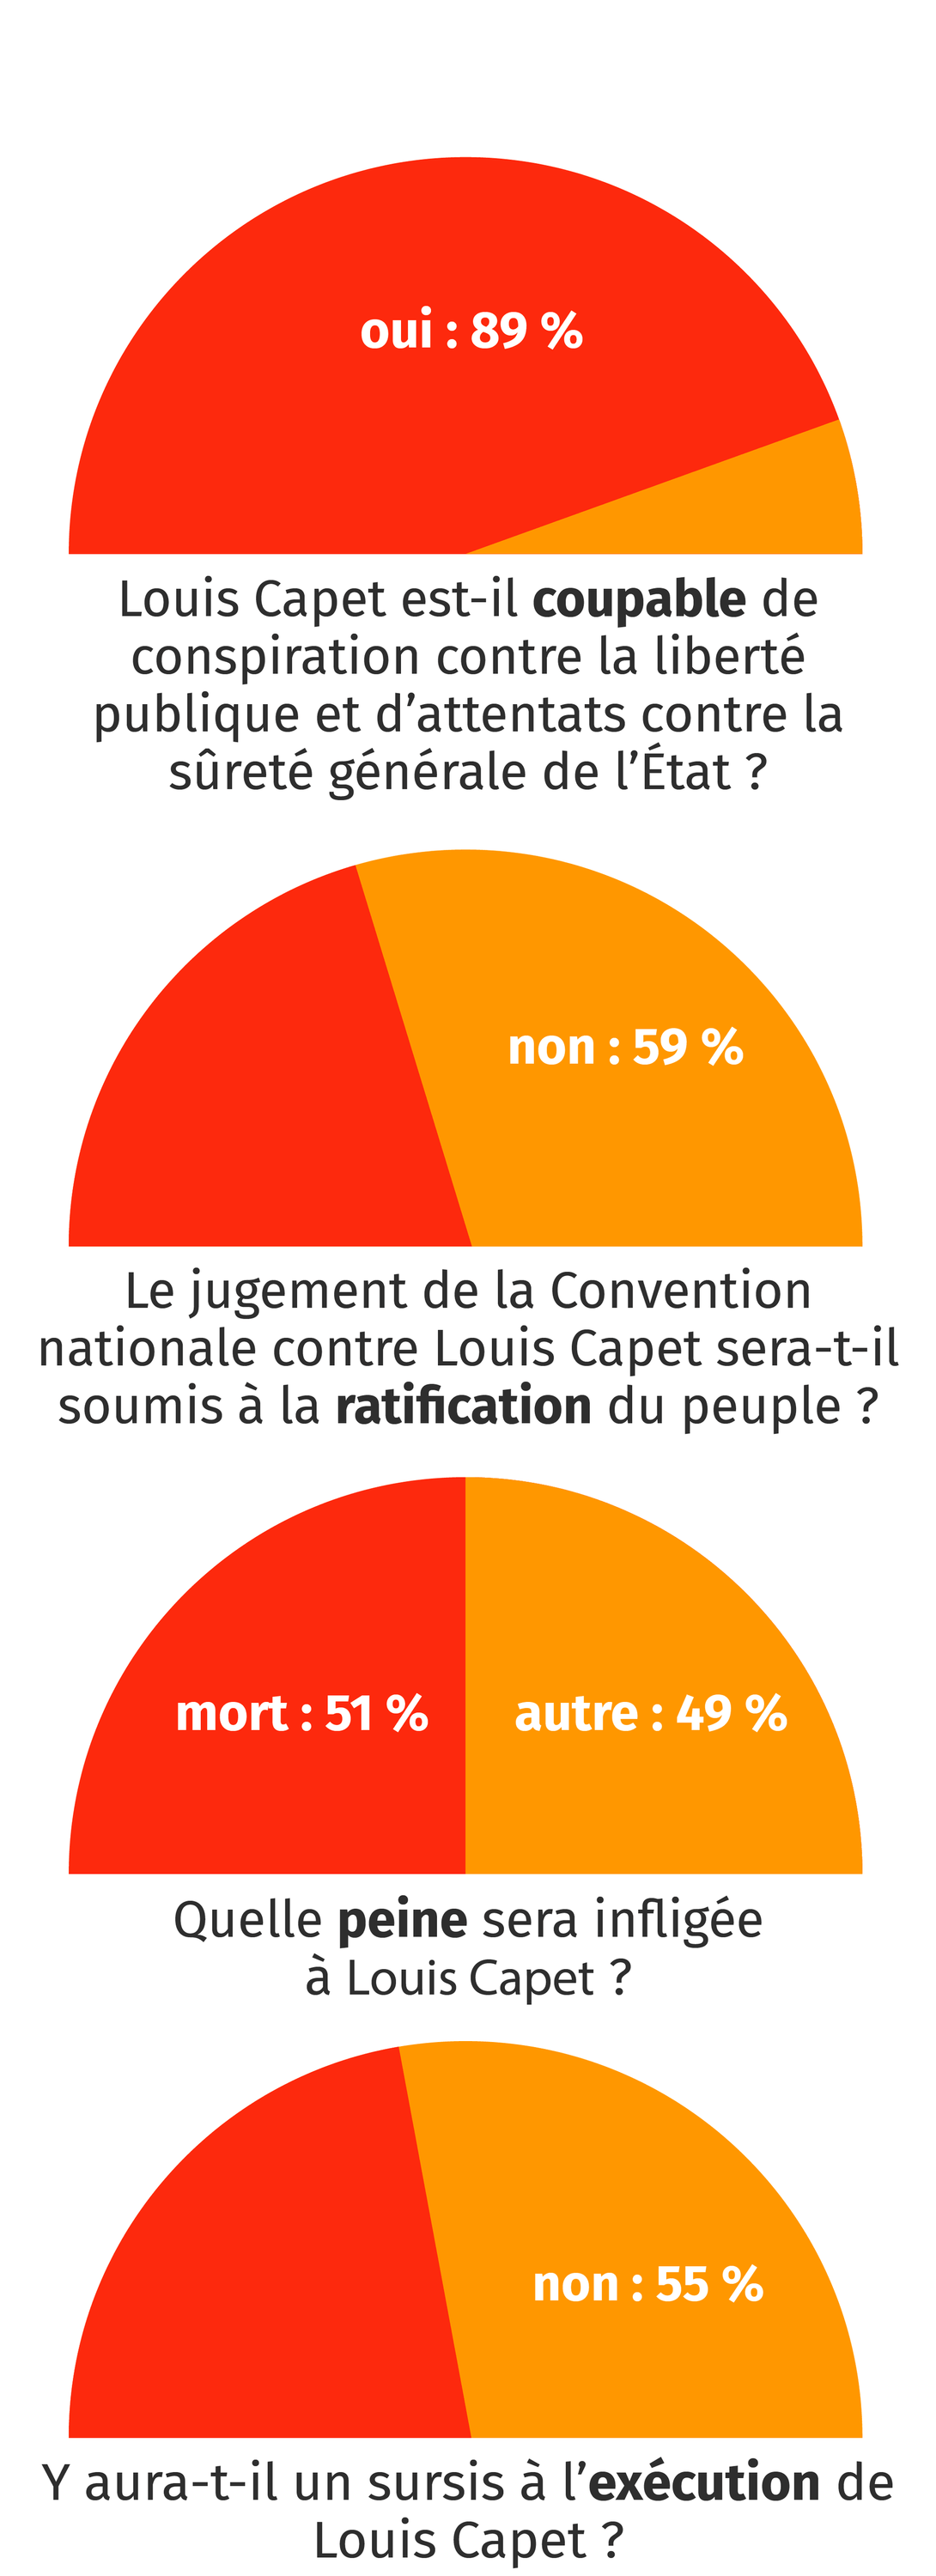 La Convention juge le roi